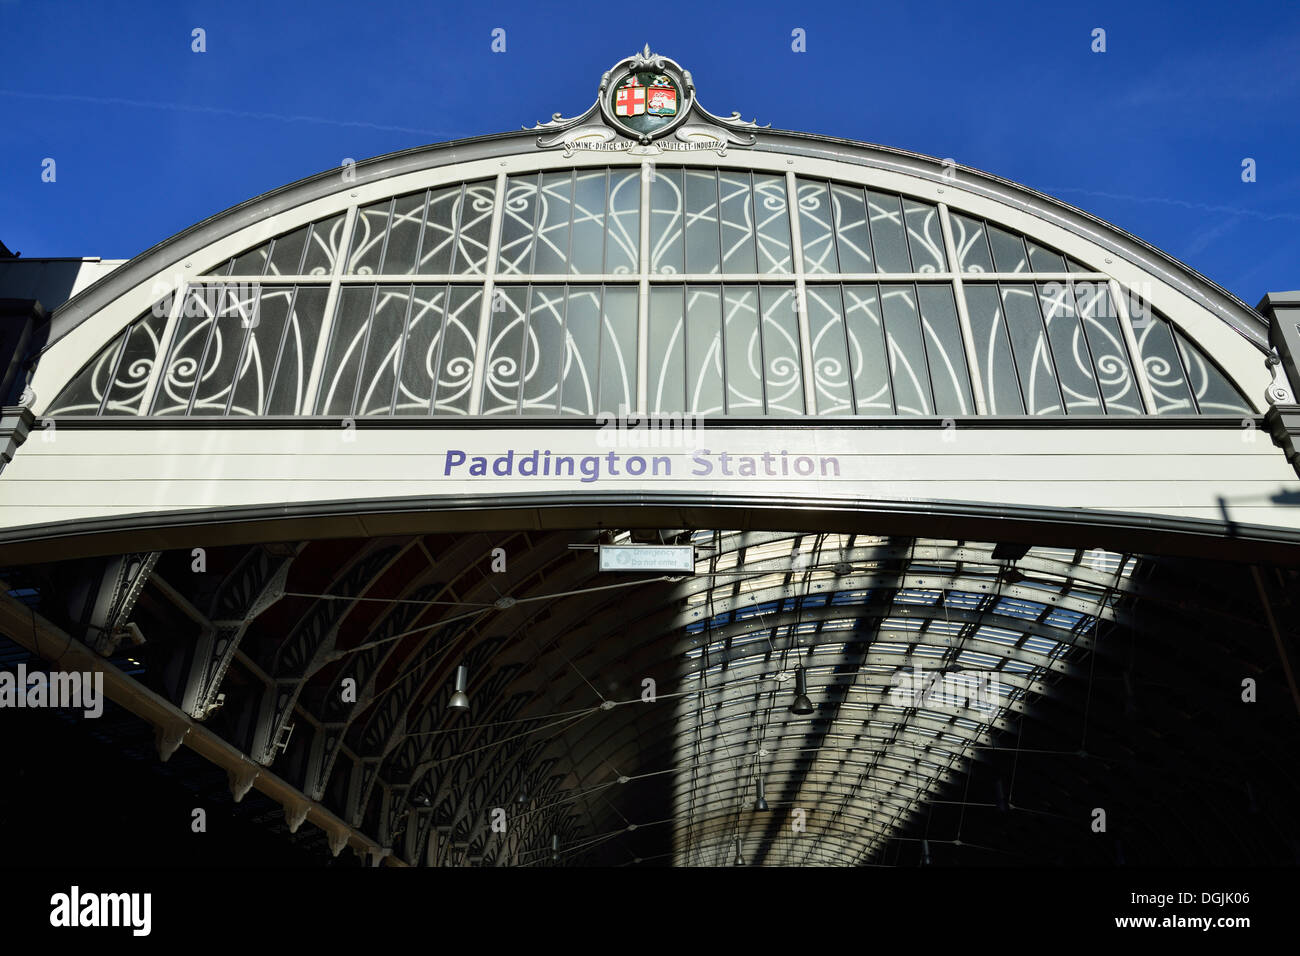 Paddington Station canopy London W2 United Kingdom & Paddington Station canopy London W2 United Kingdom Stock Photo ...